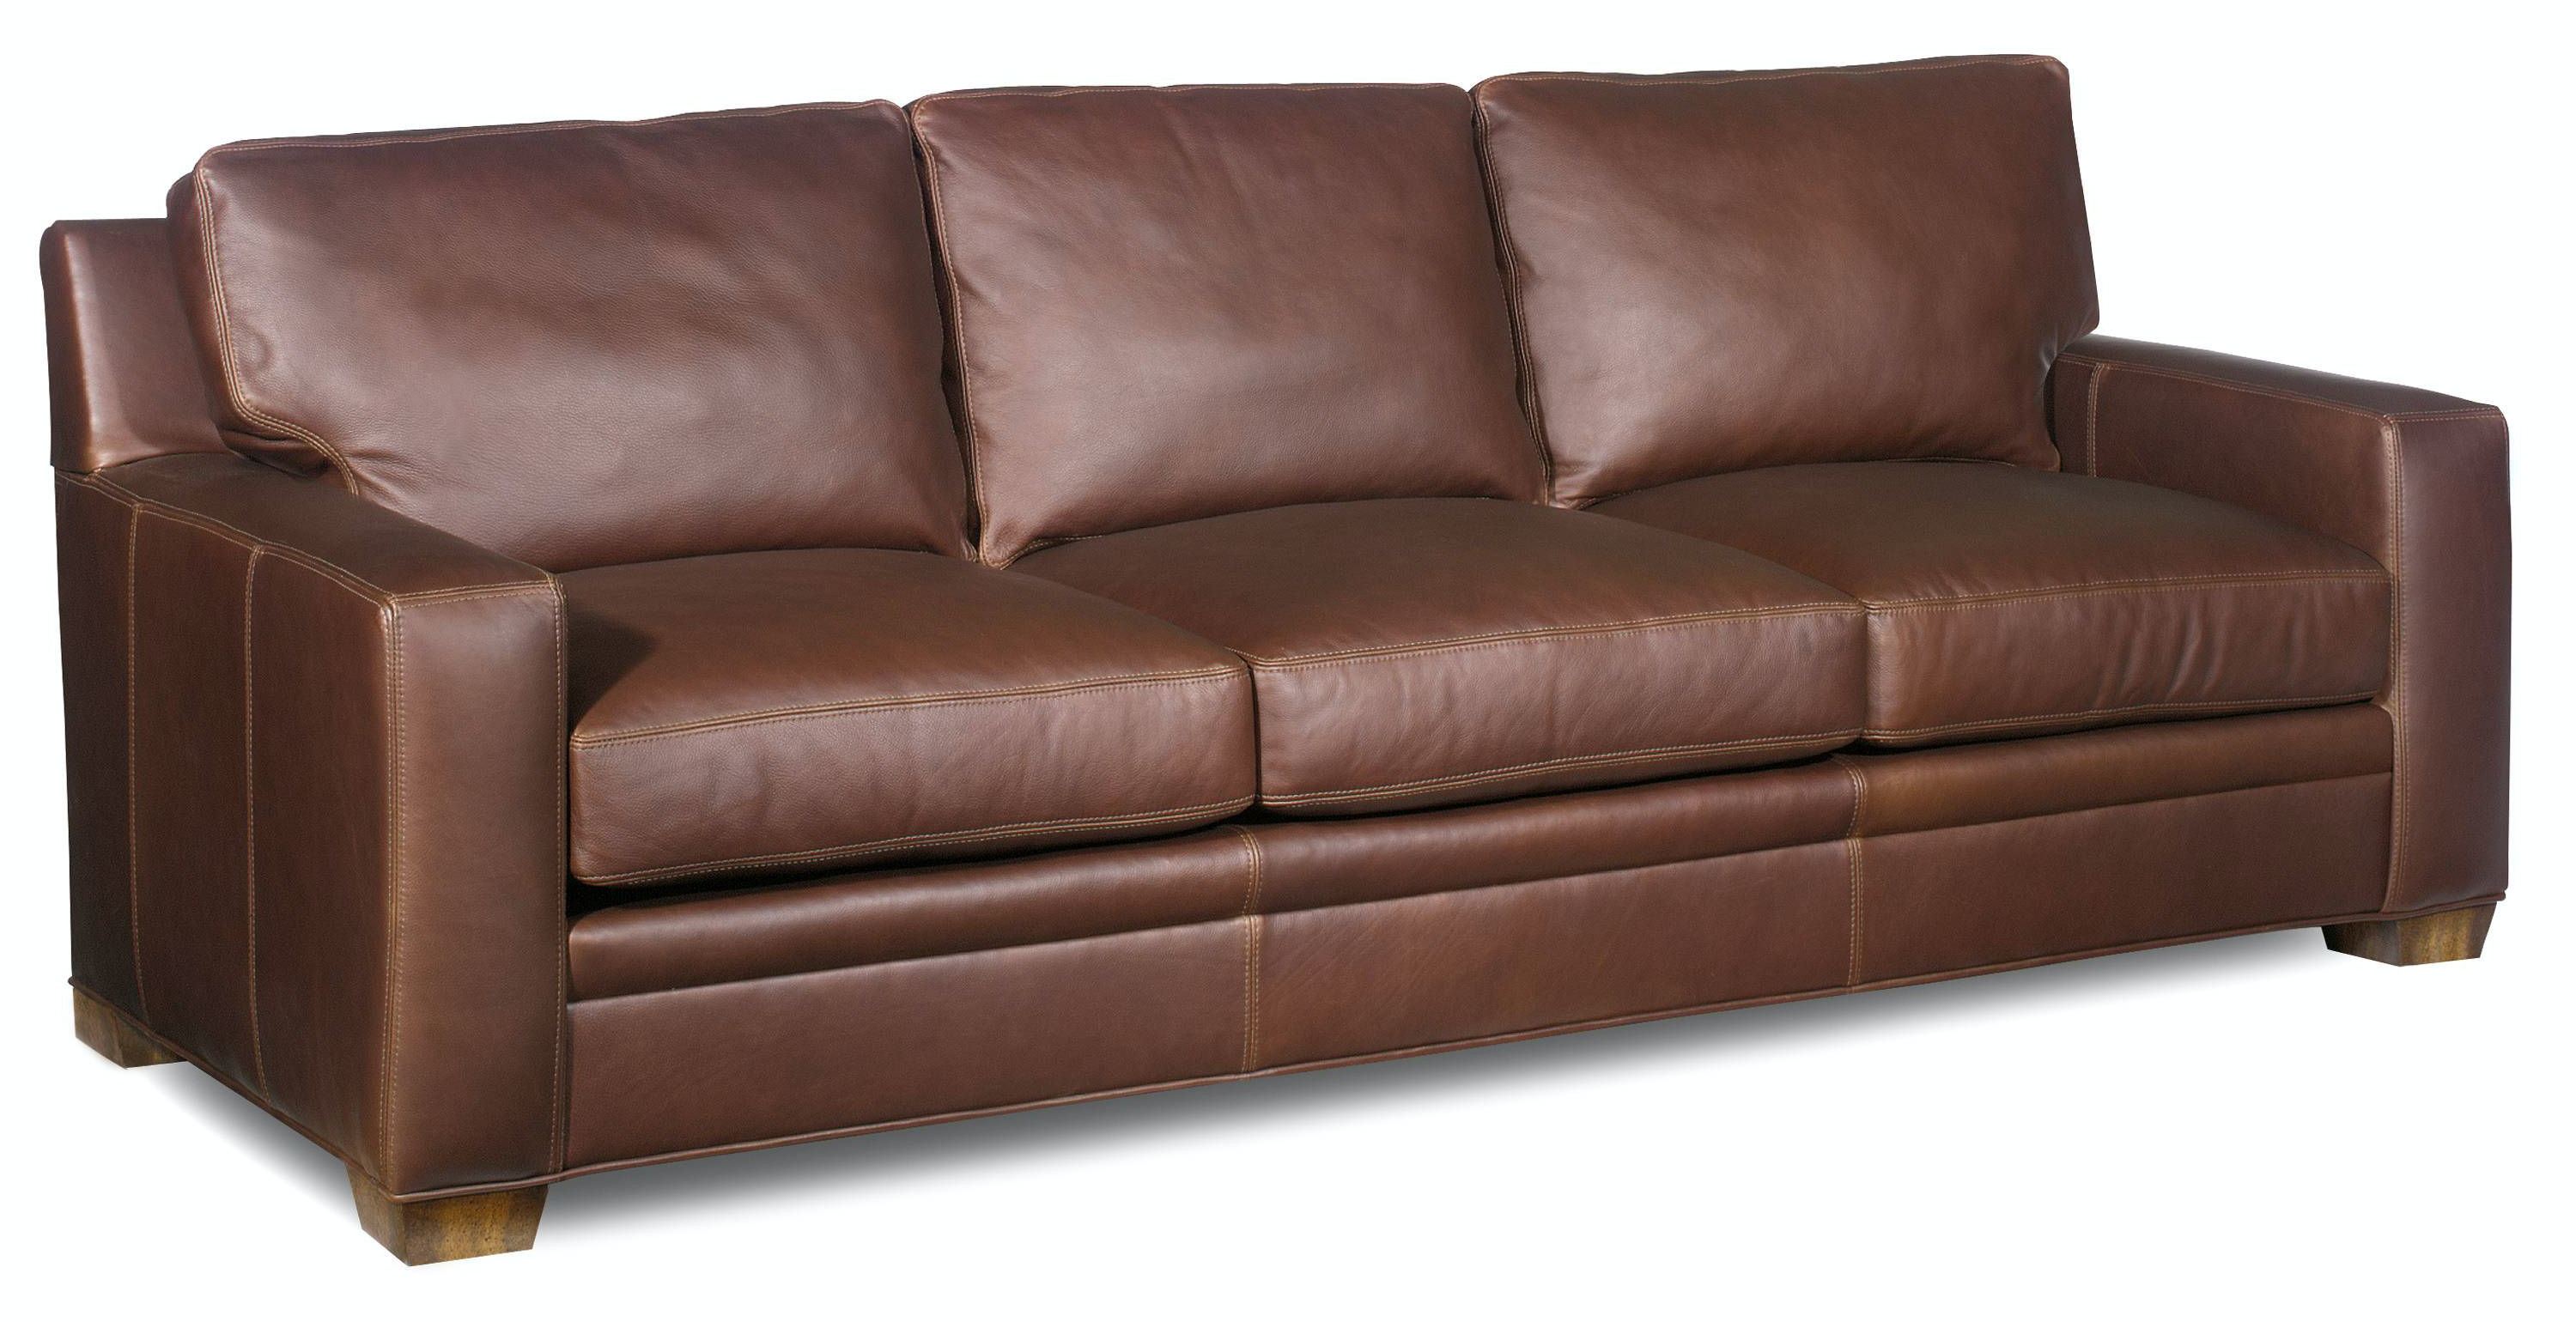 Bradington Young Hanley Stationary Large Sofa 8 Way Tie 223 96